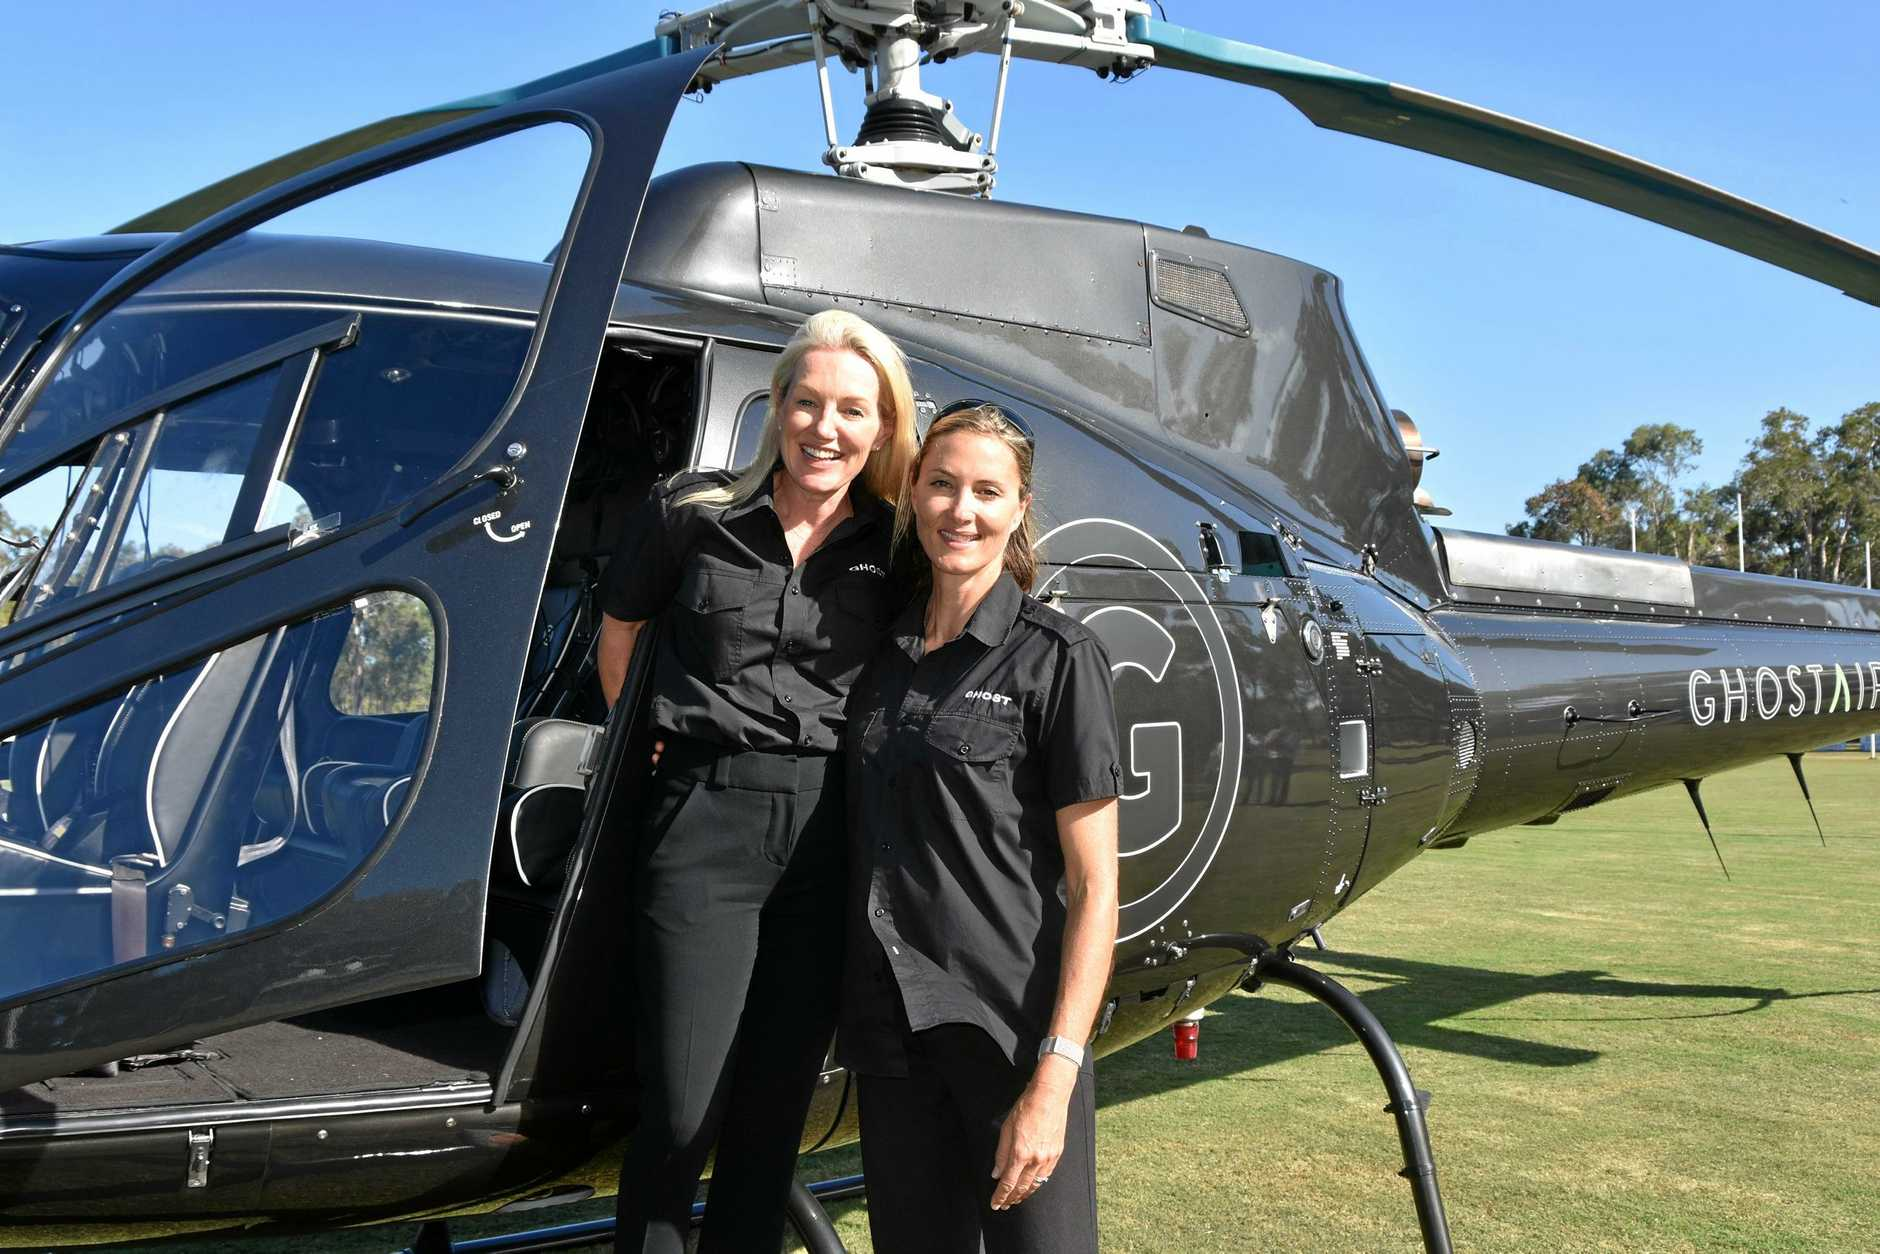 Ghost Air's operation manager Sue-Ellen Knox and head pilot Johanna Osbourne at the official launch of their new helicopter commuter service.